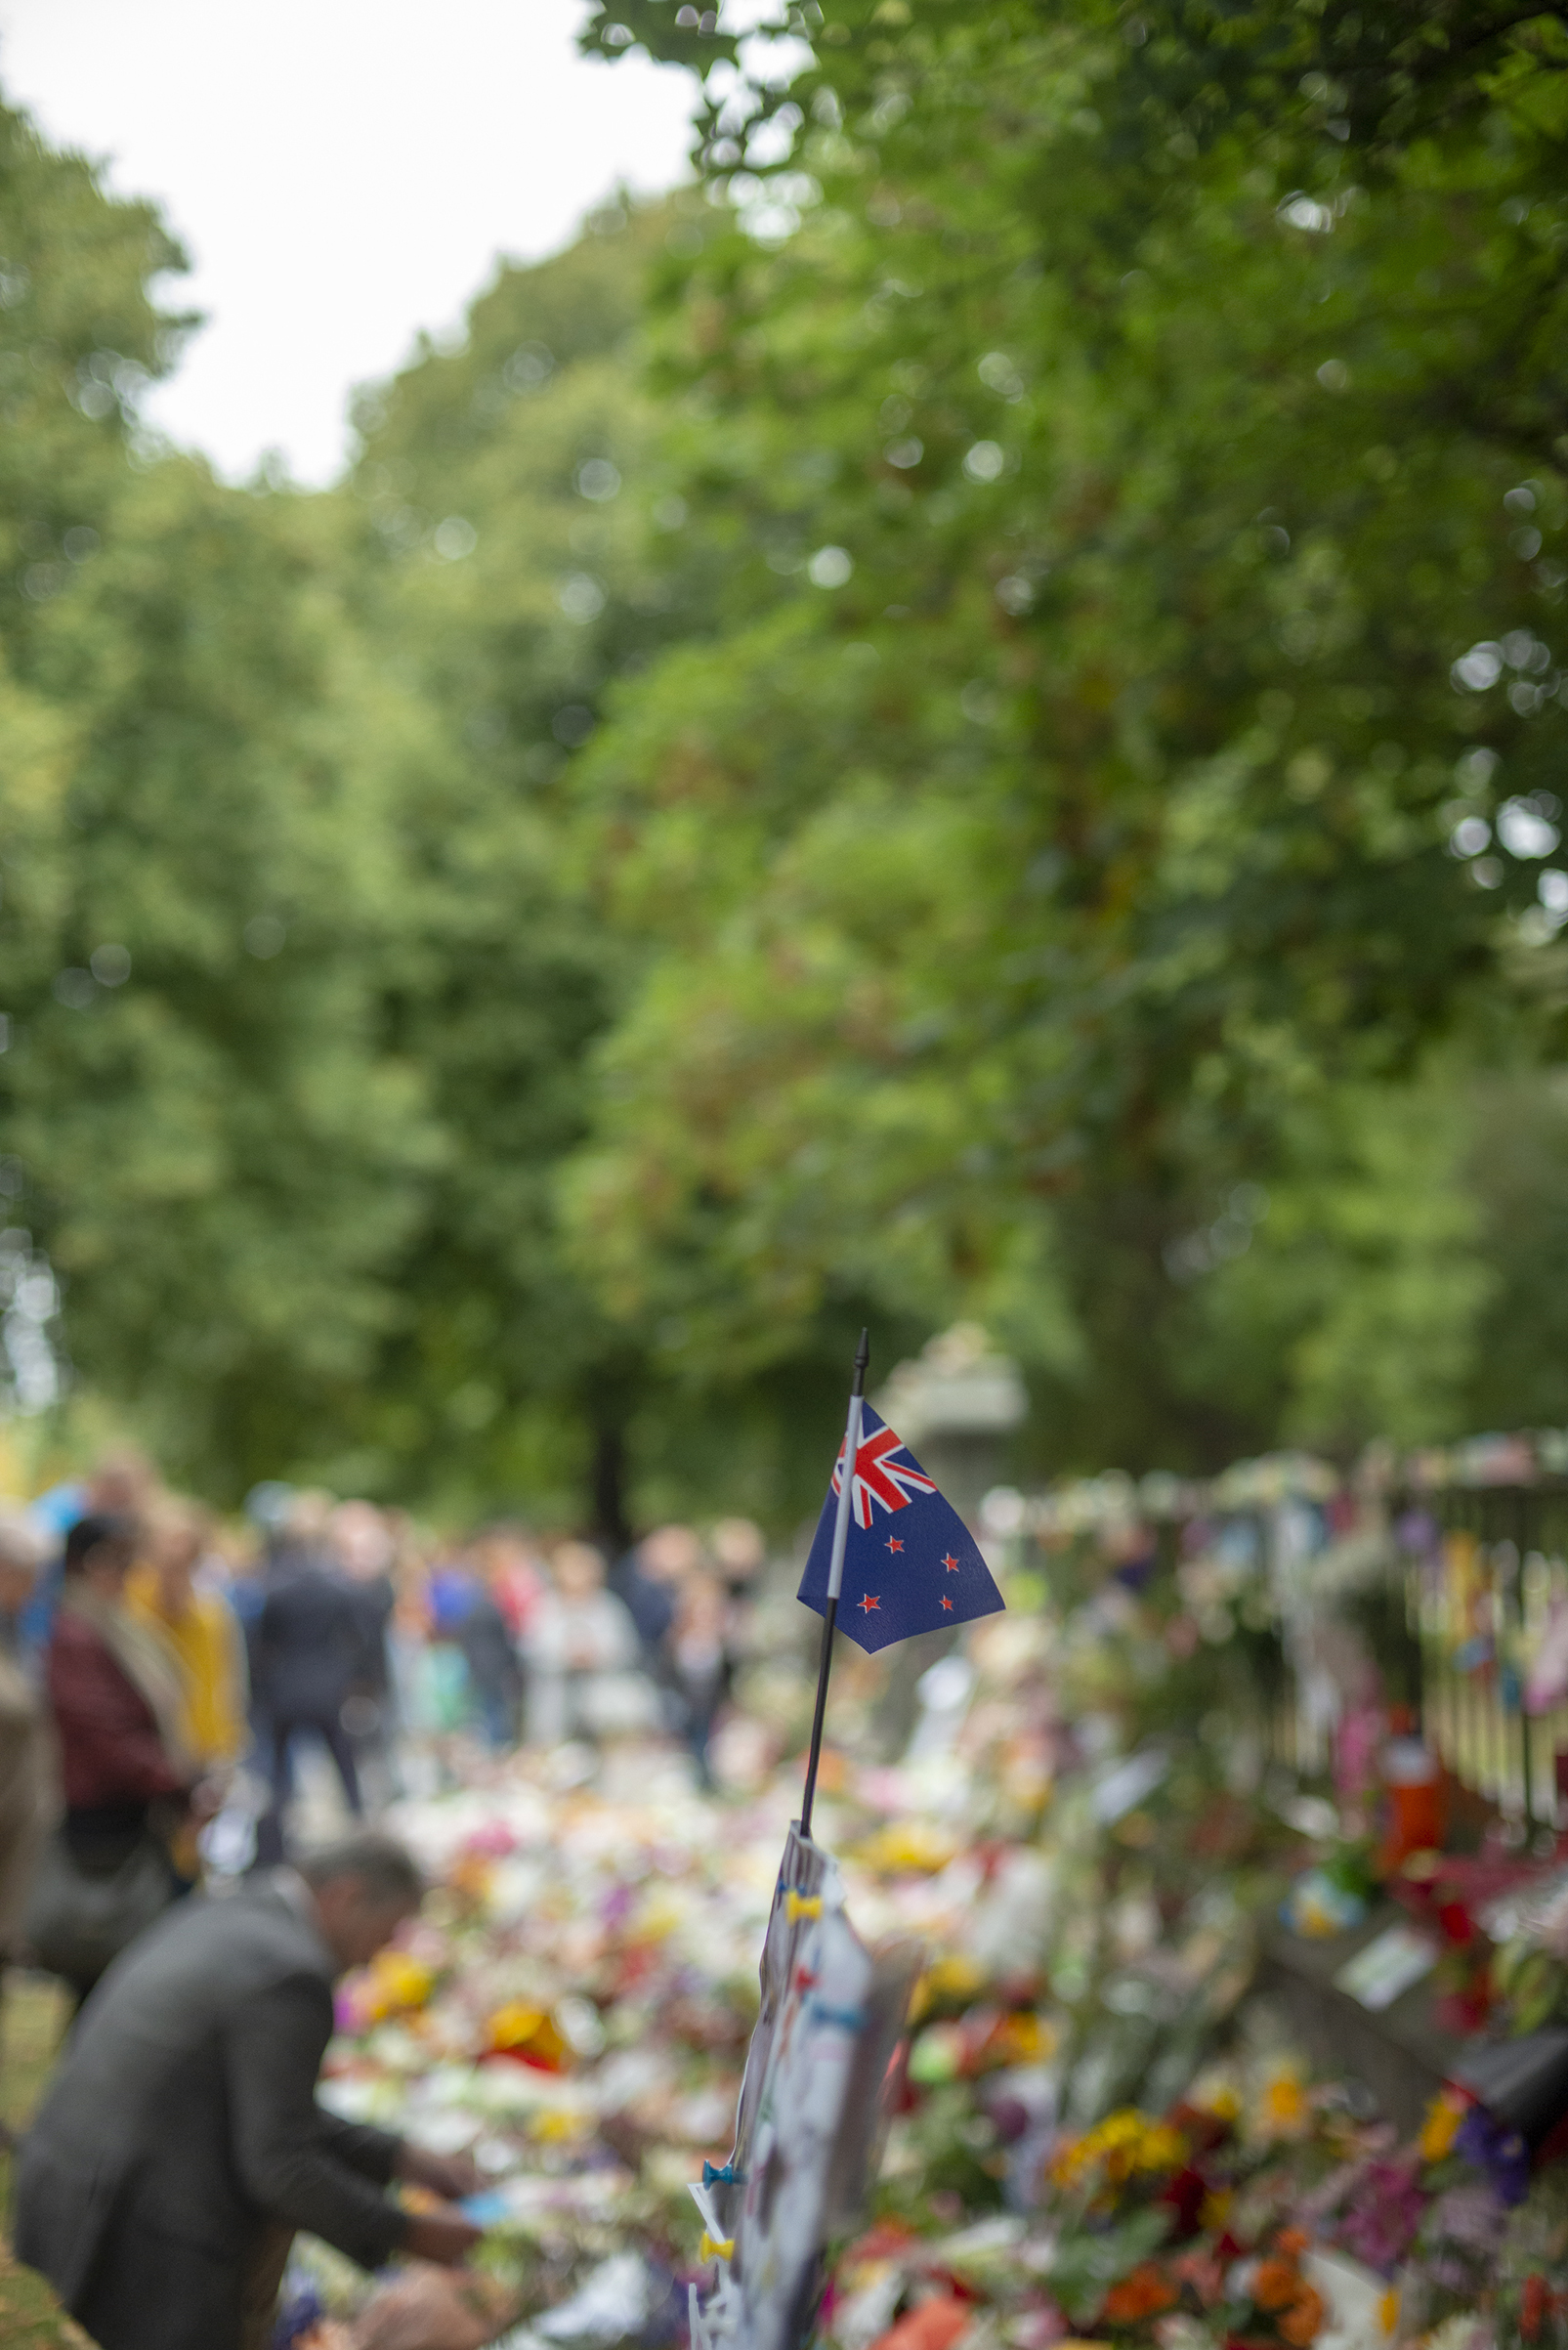 A New Zealand flag stand amidst the tributes to the shooting victims in Christchurch.